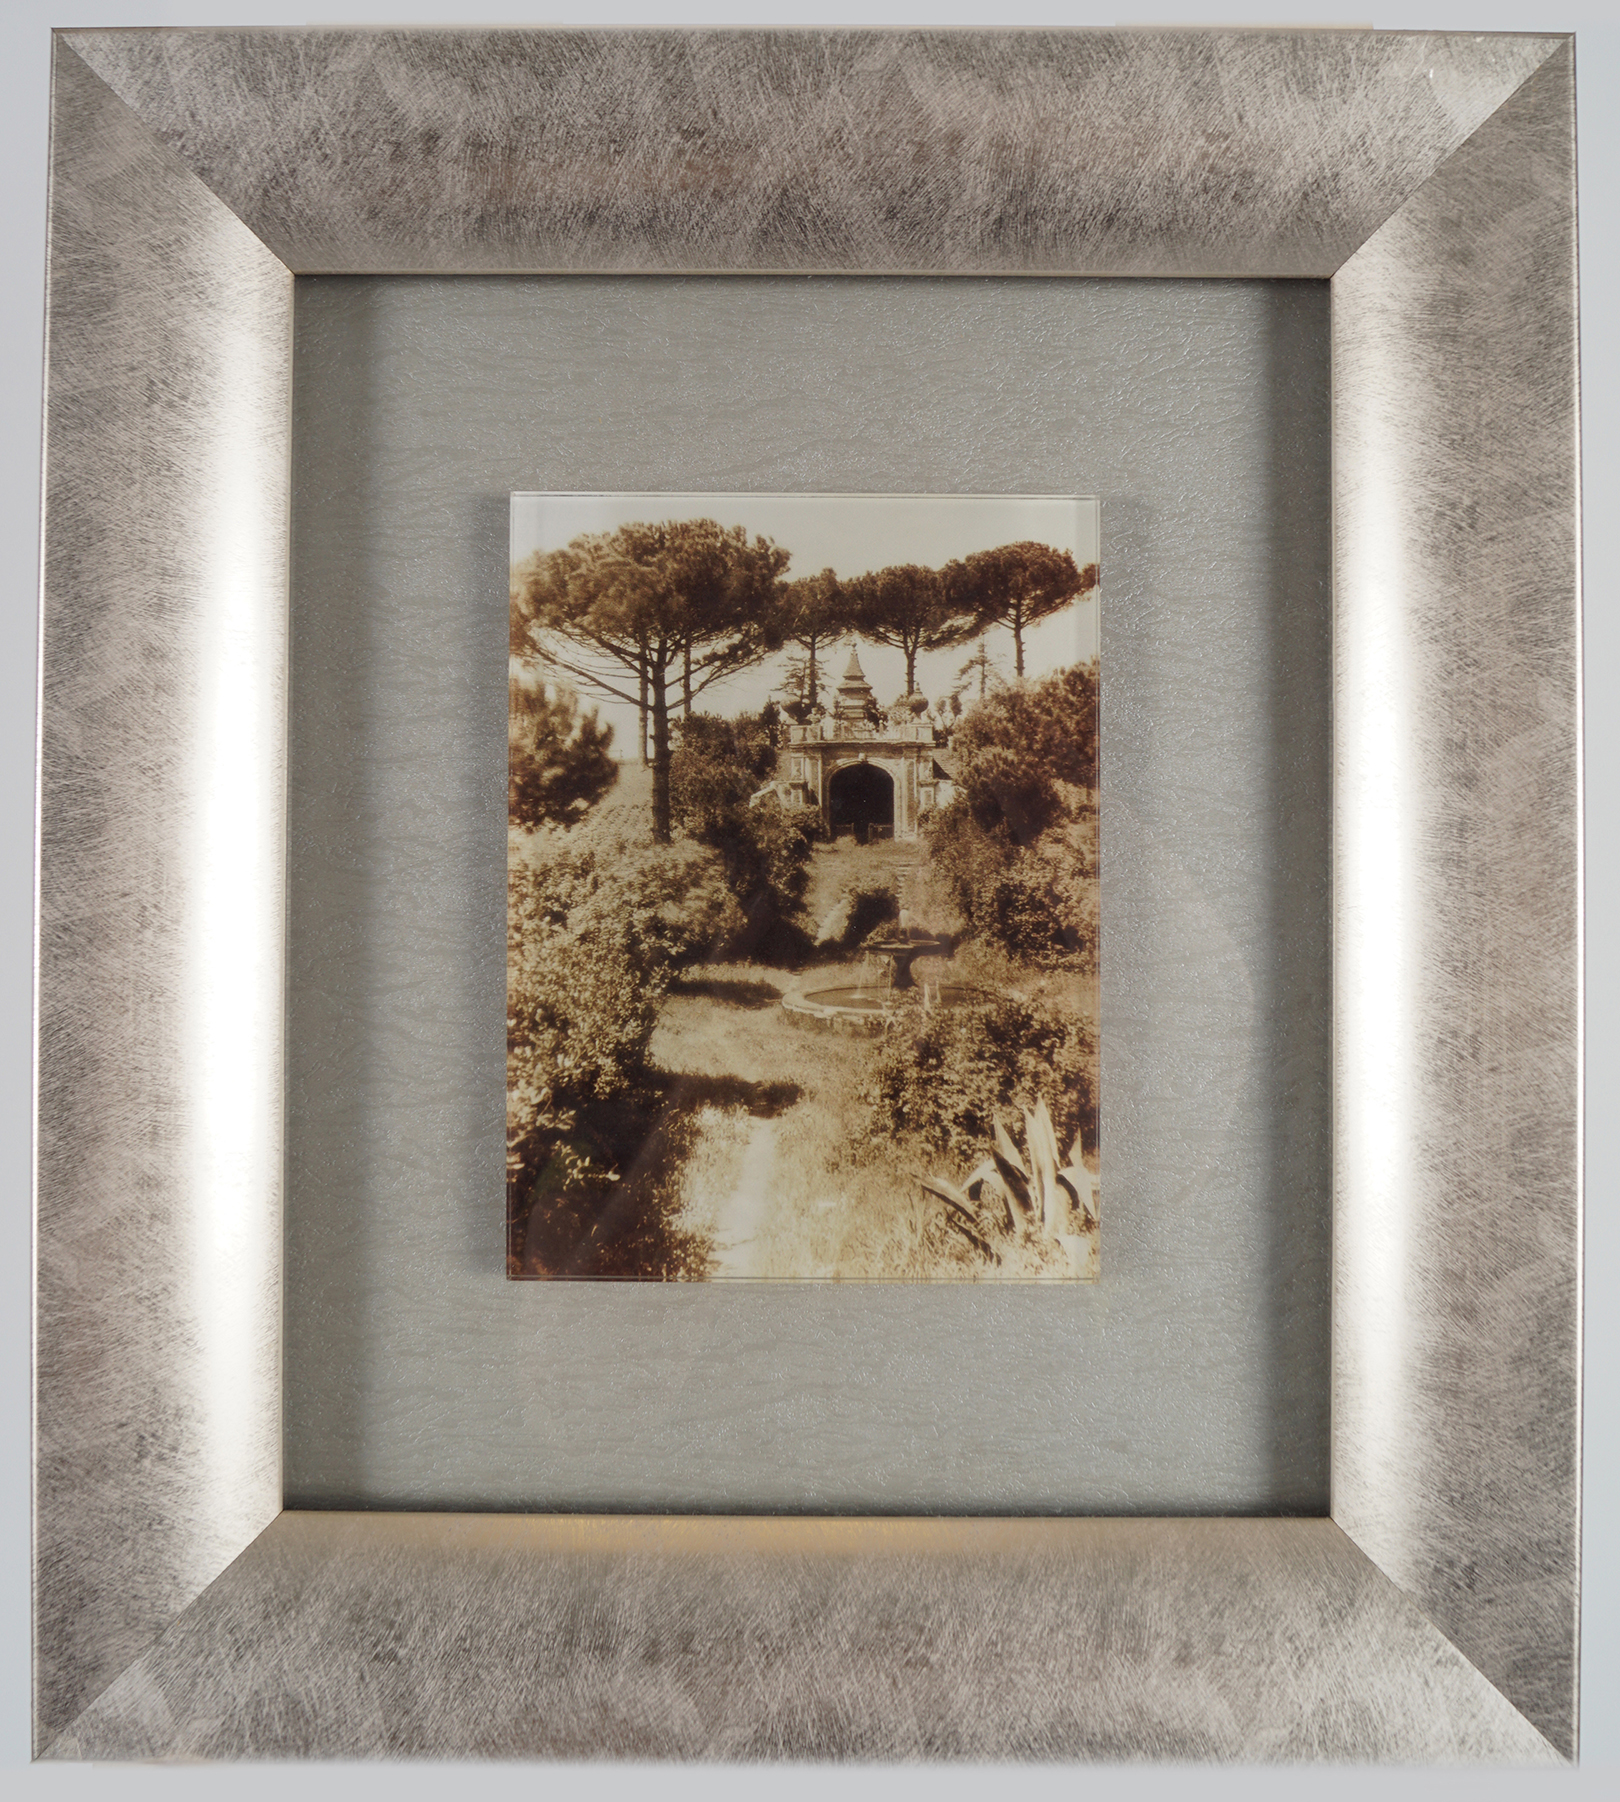 PAIR OF MOUNTED PHOTOGRAPHS